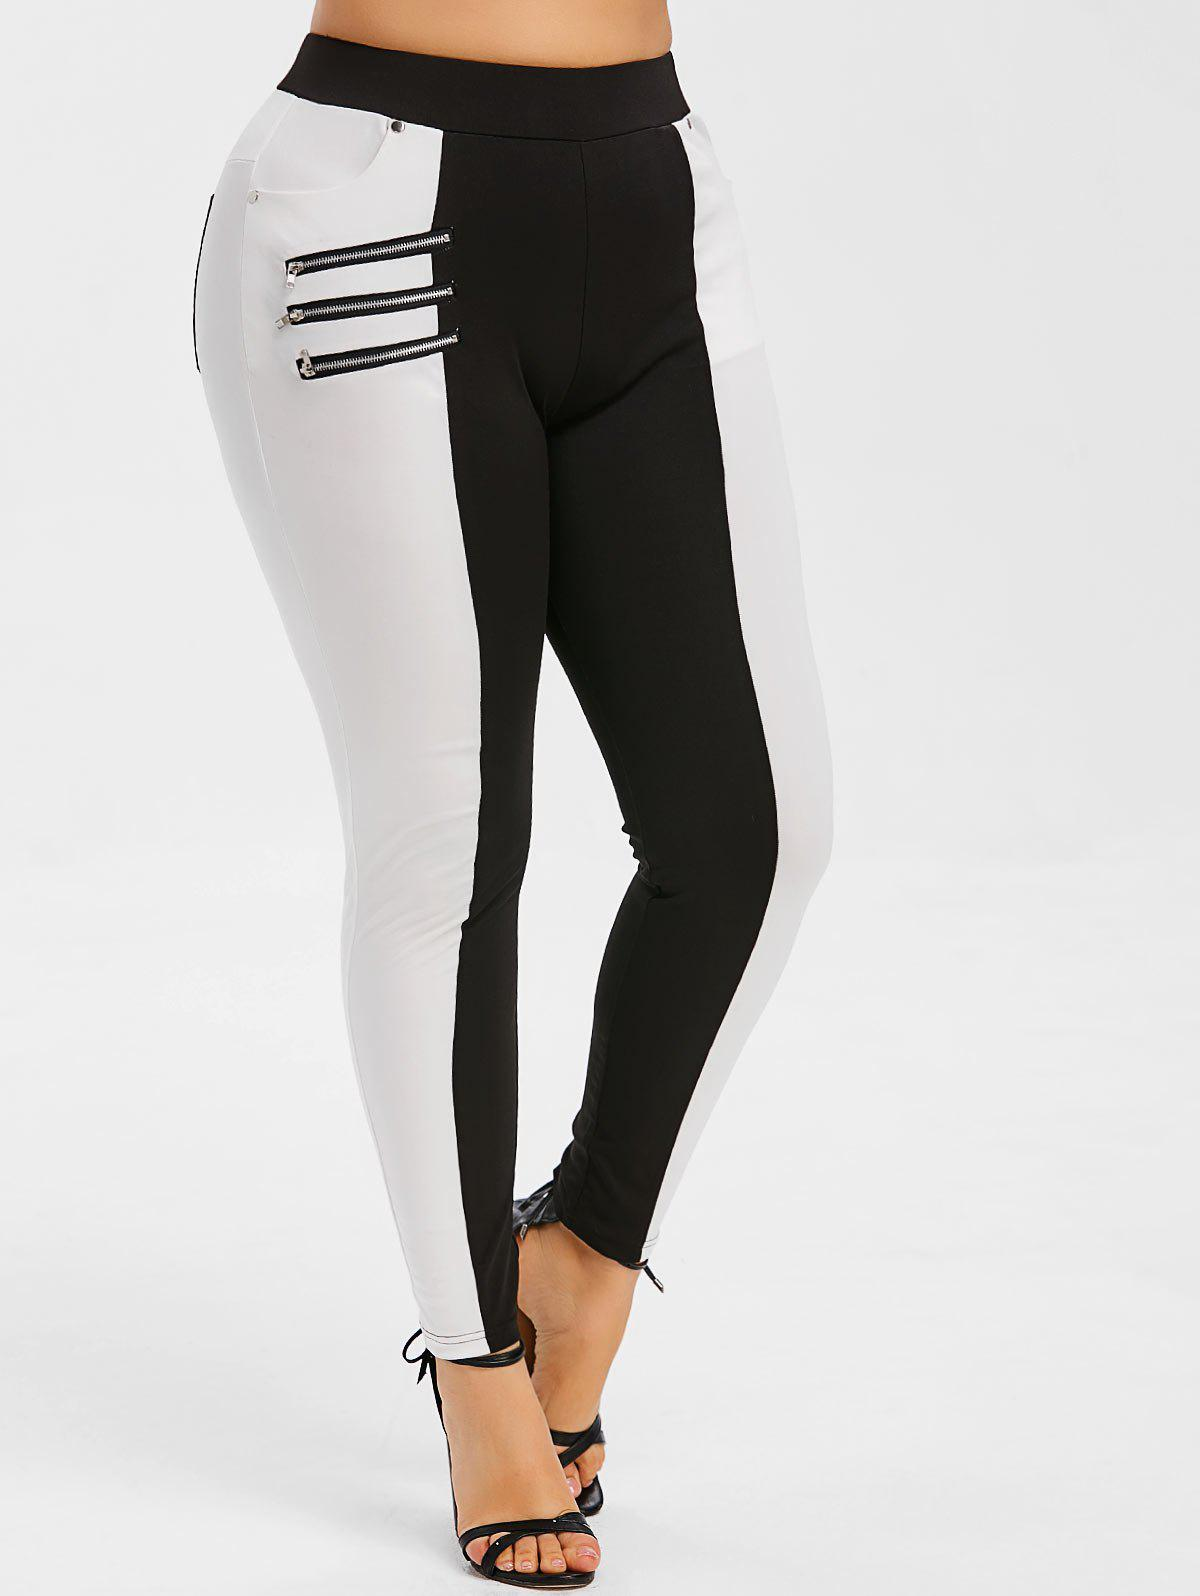 Zippers Two Tone Plus Size Skinny Pants